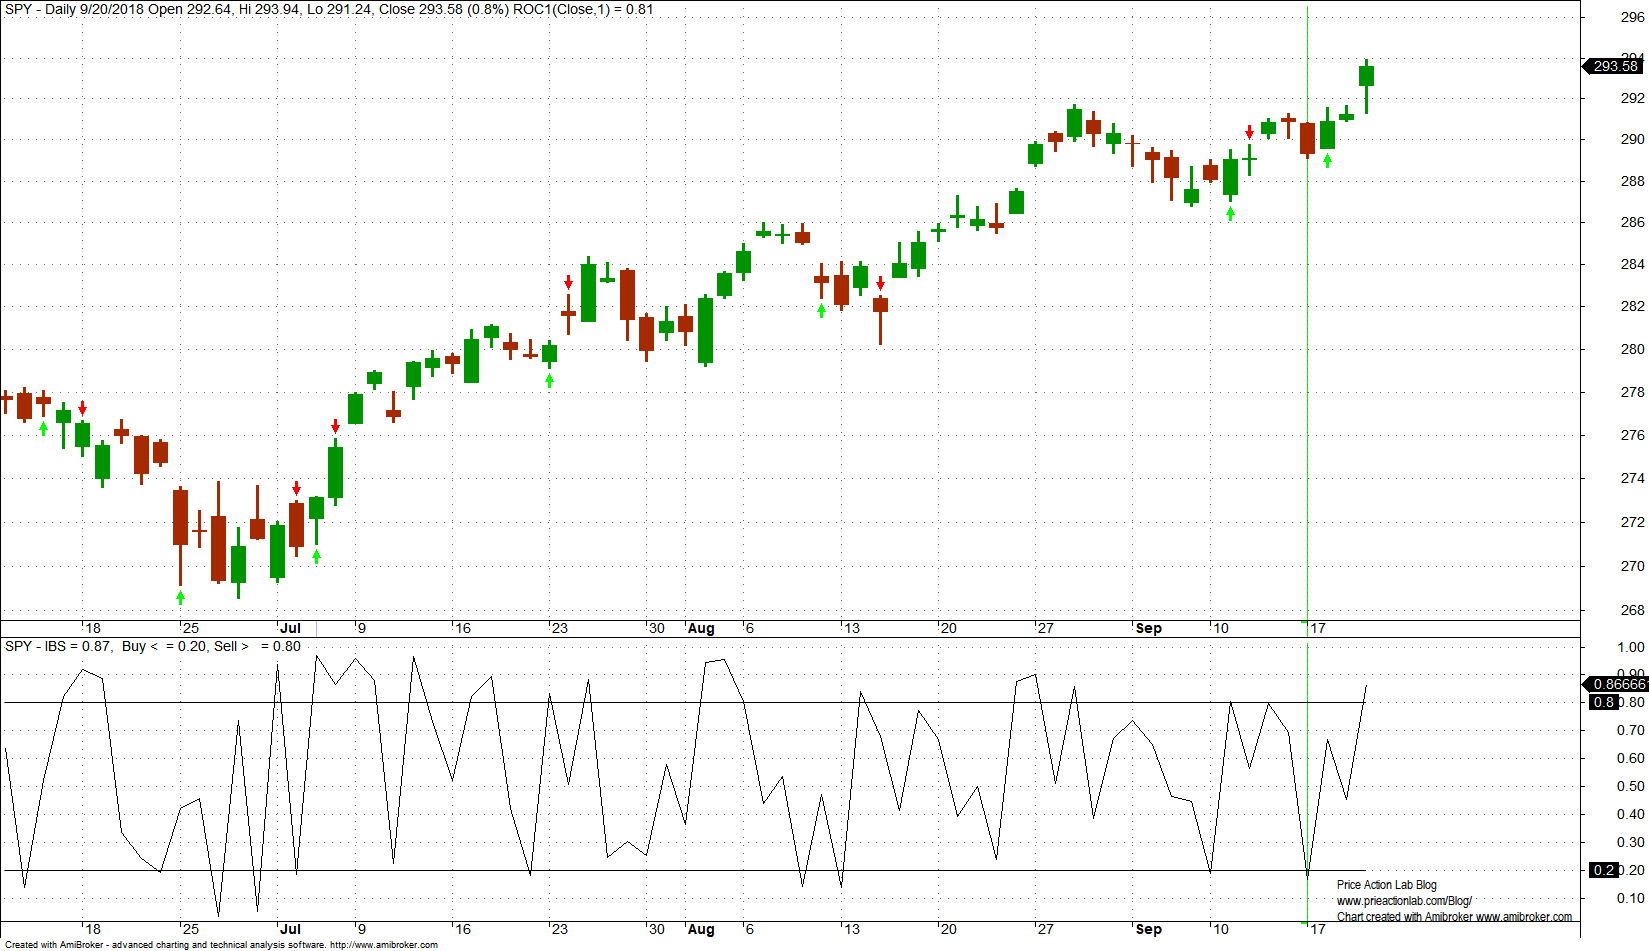 SPY daily chart with IBS indicator